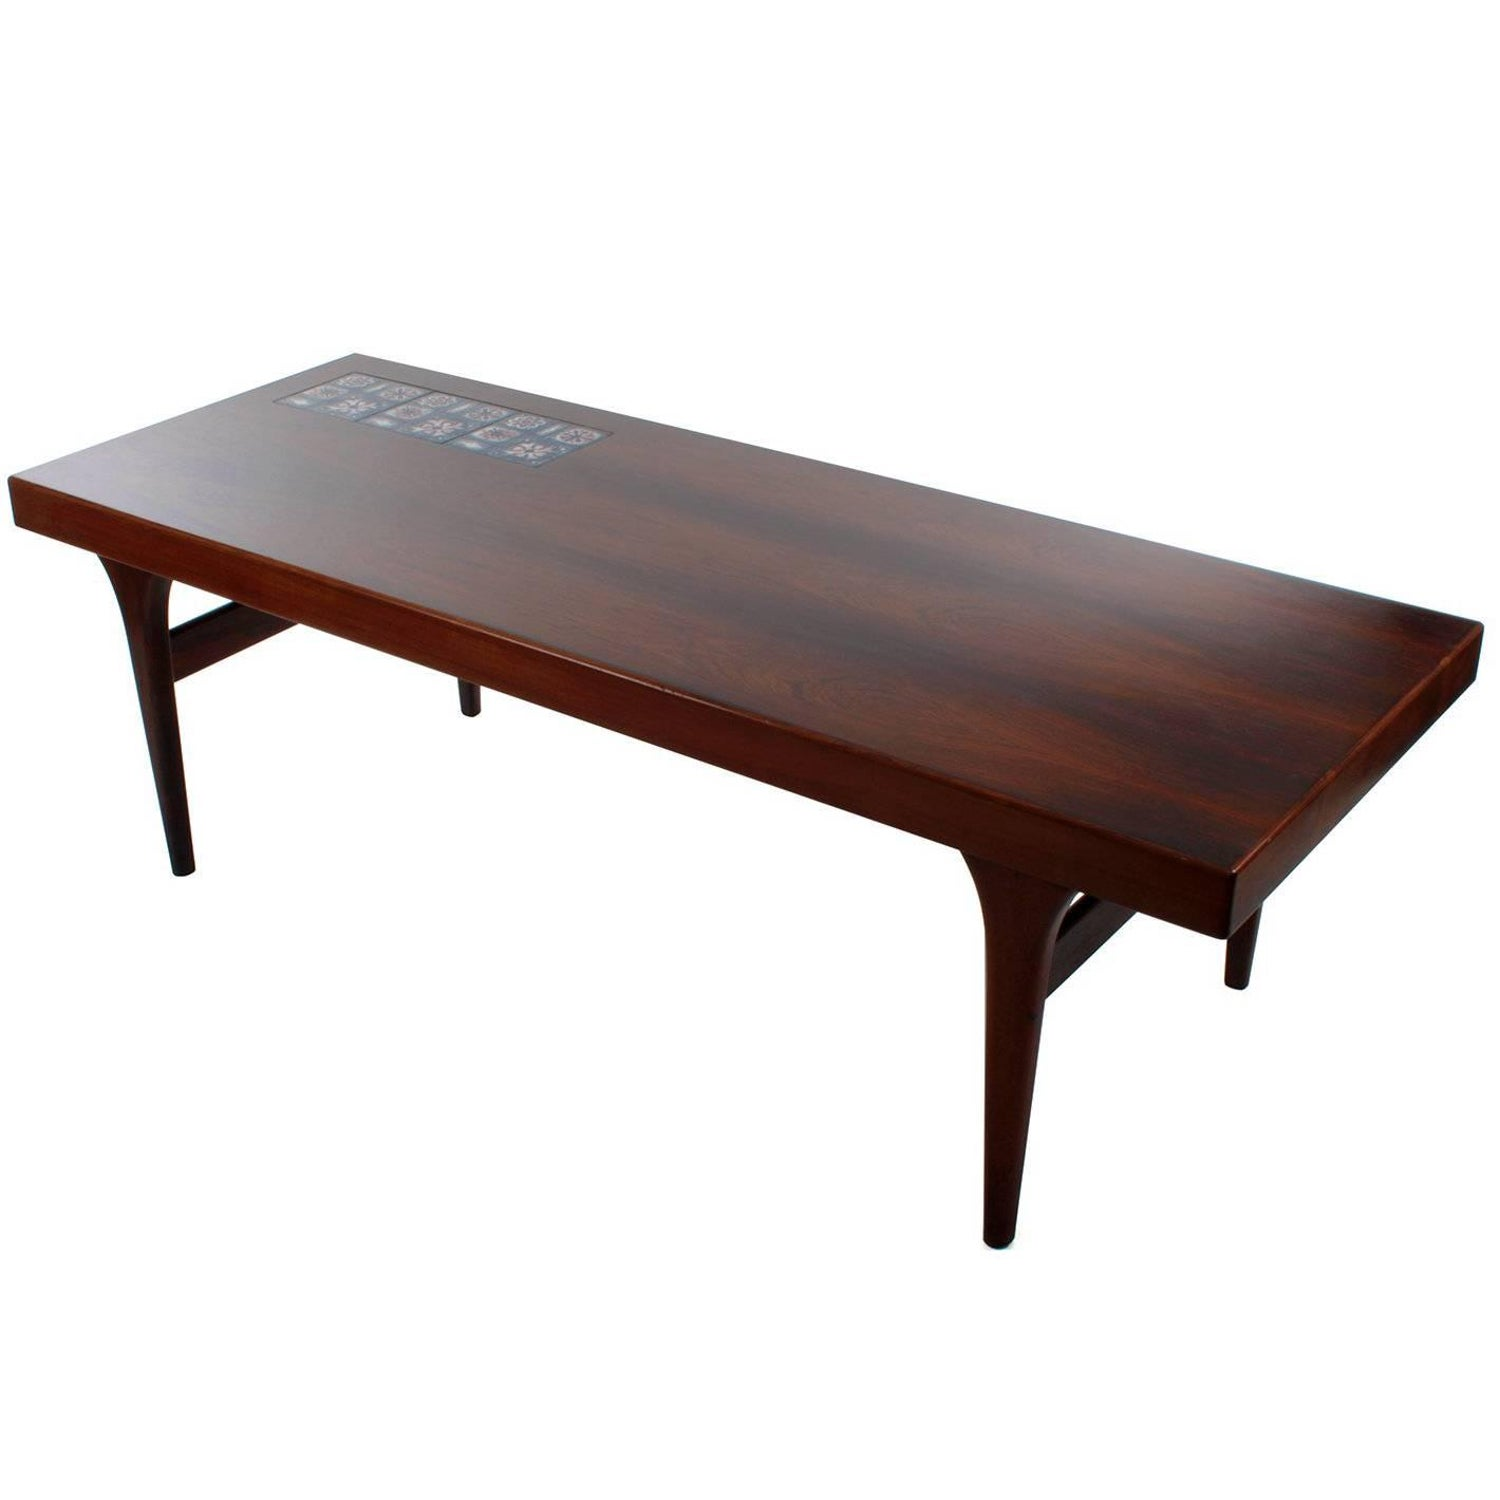 1960 Swedish or Danish Two Tone Rosewood Coffee Table with